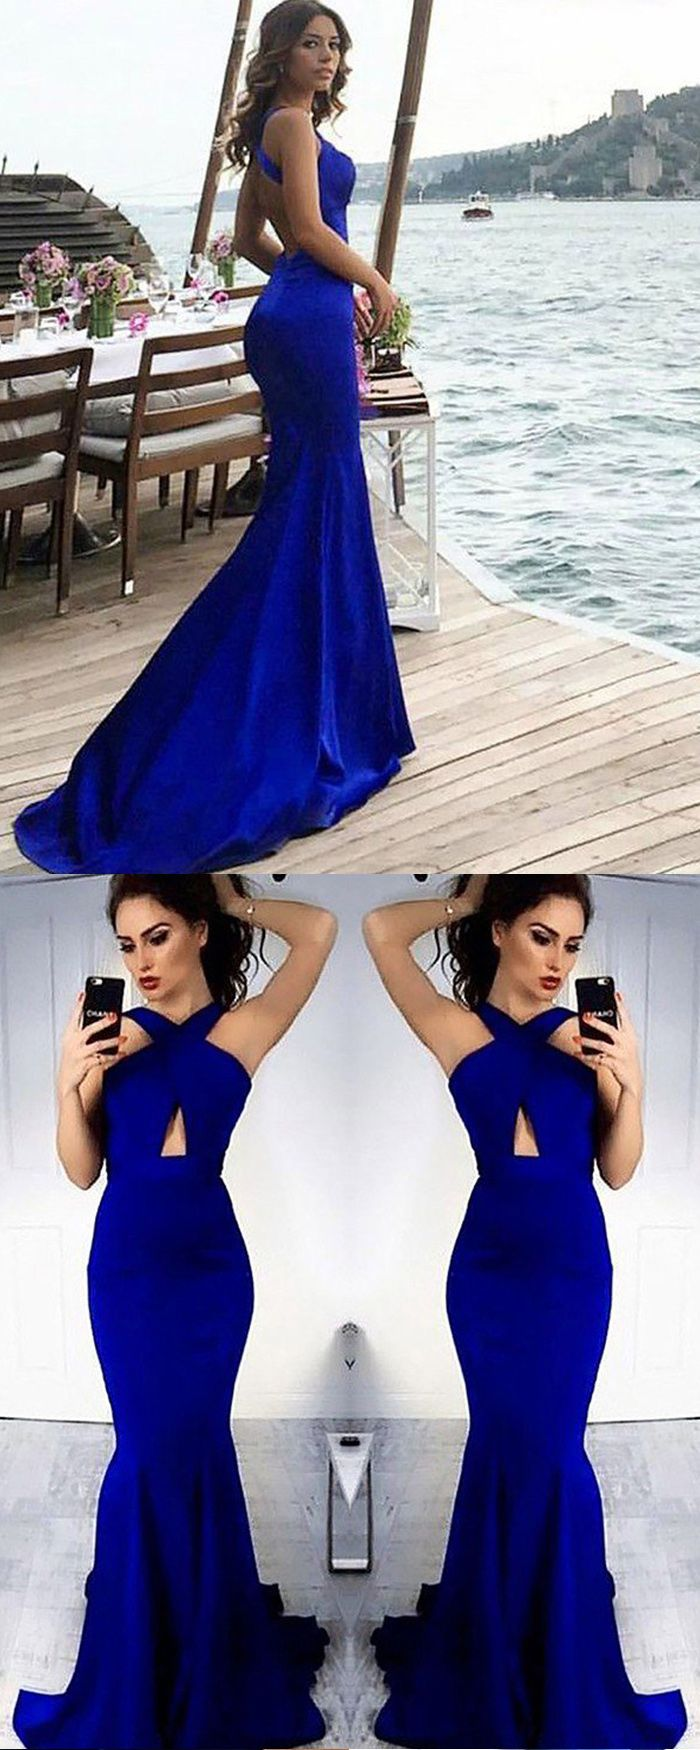 Crisscross blue cutout mermaid long prom dress pm long prom